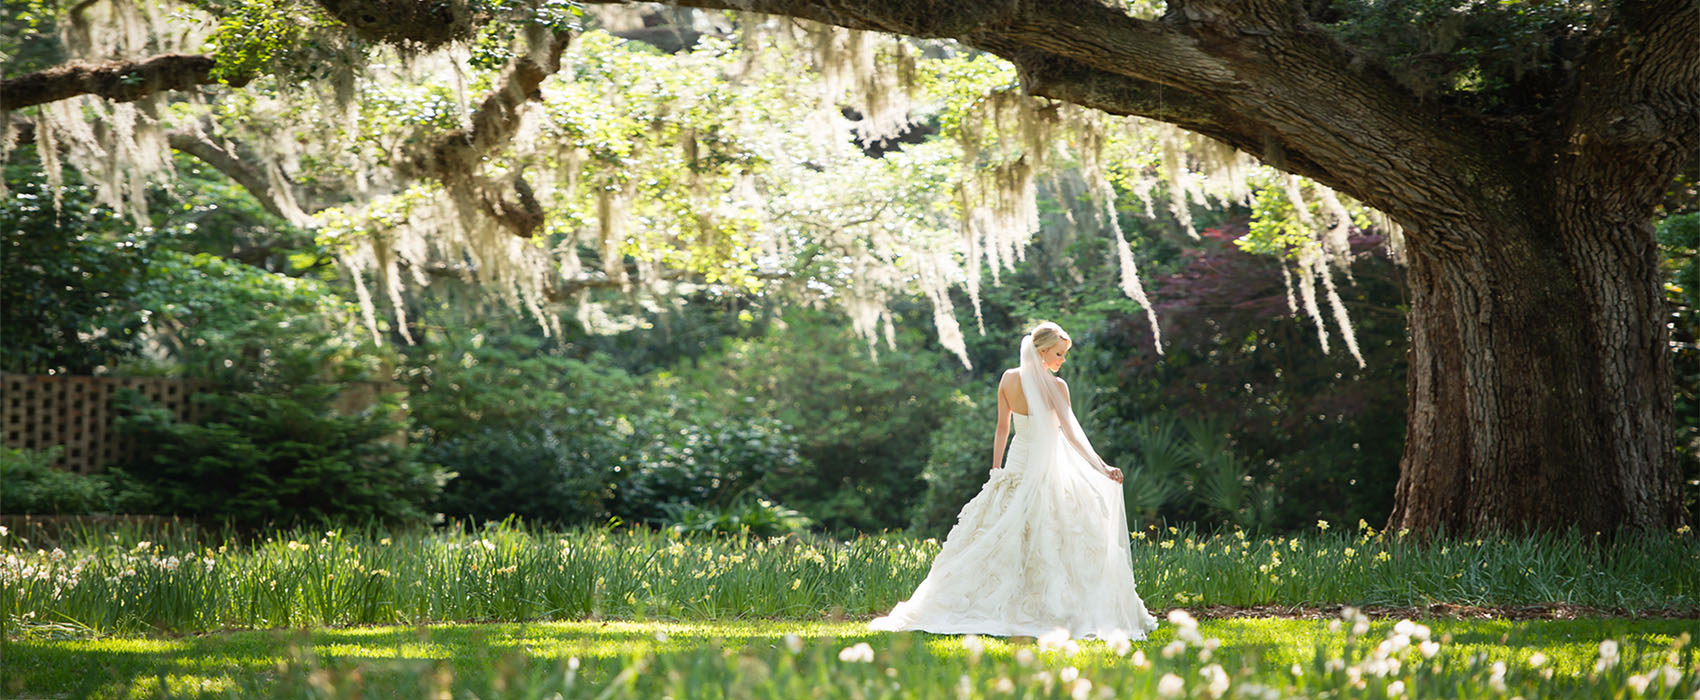 The sun shines through the oak trees draped with Spanish moss onto the bride who is standing in a field of daffodils.